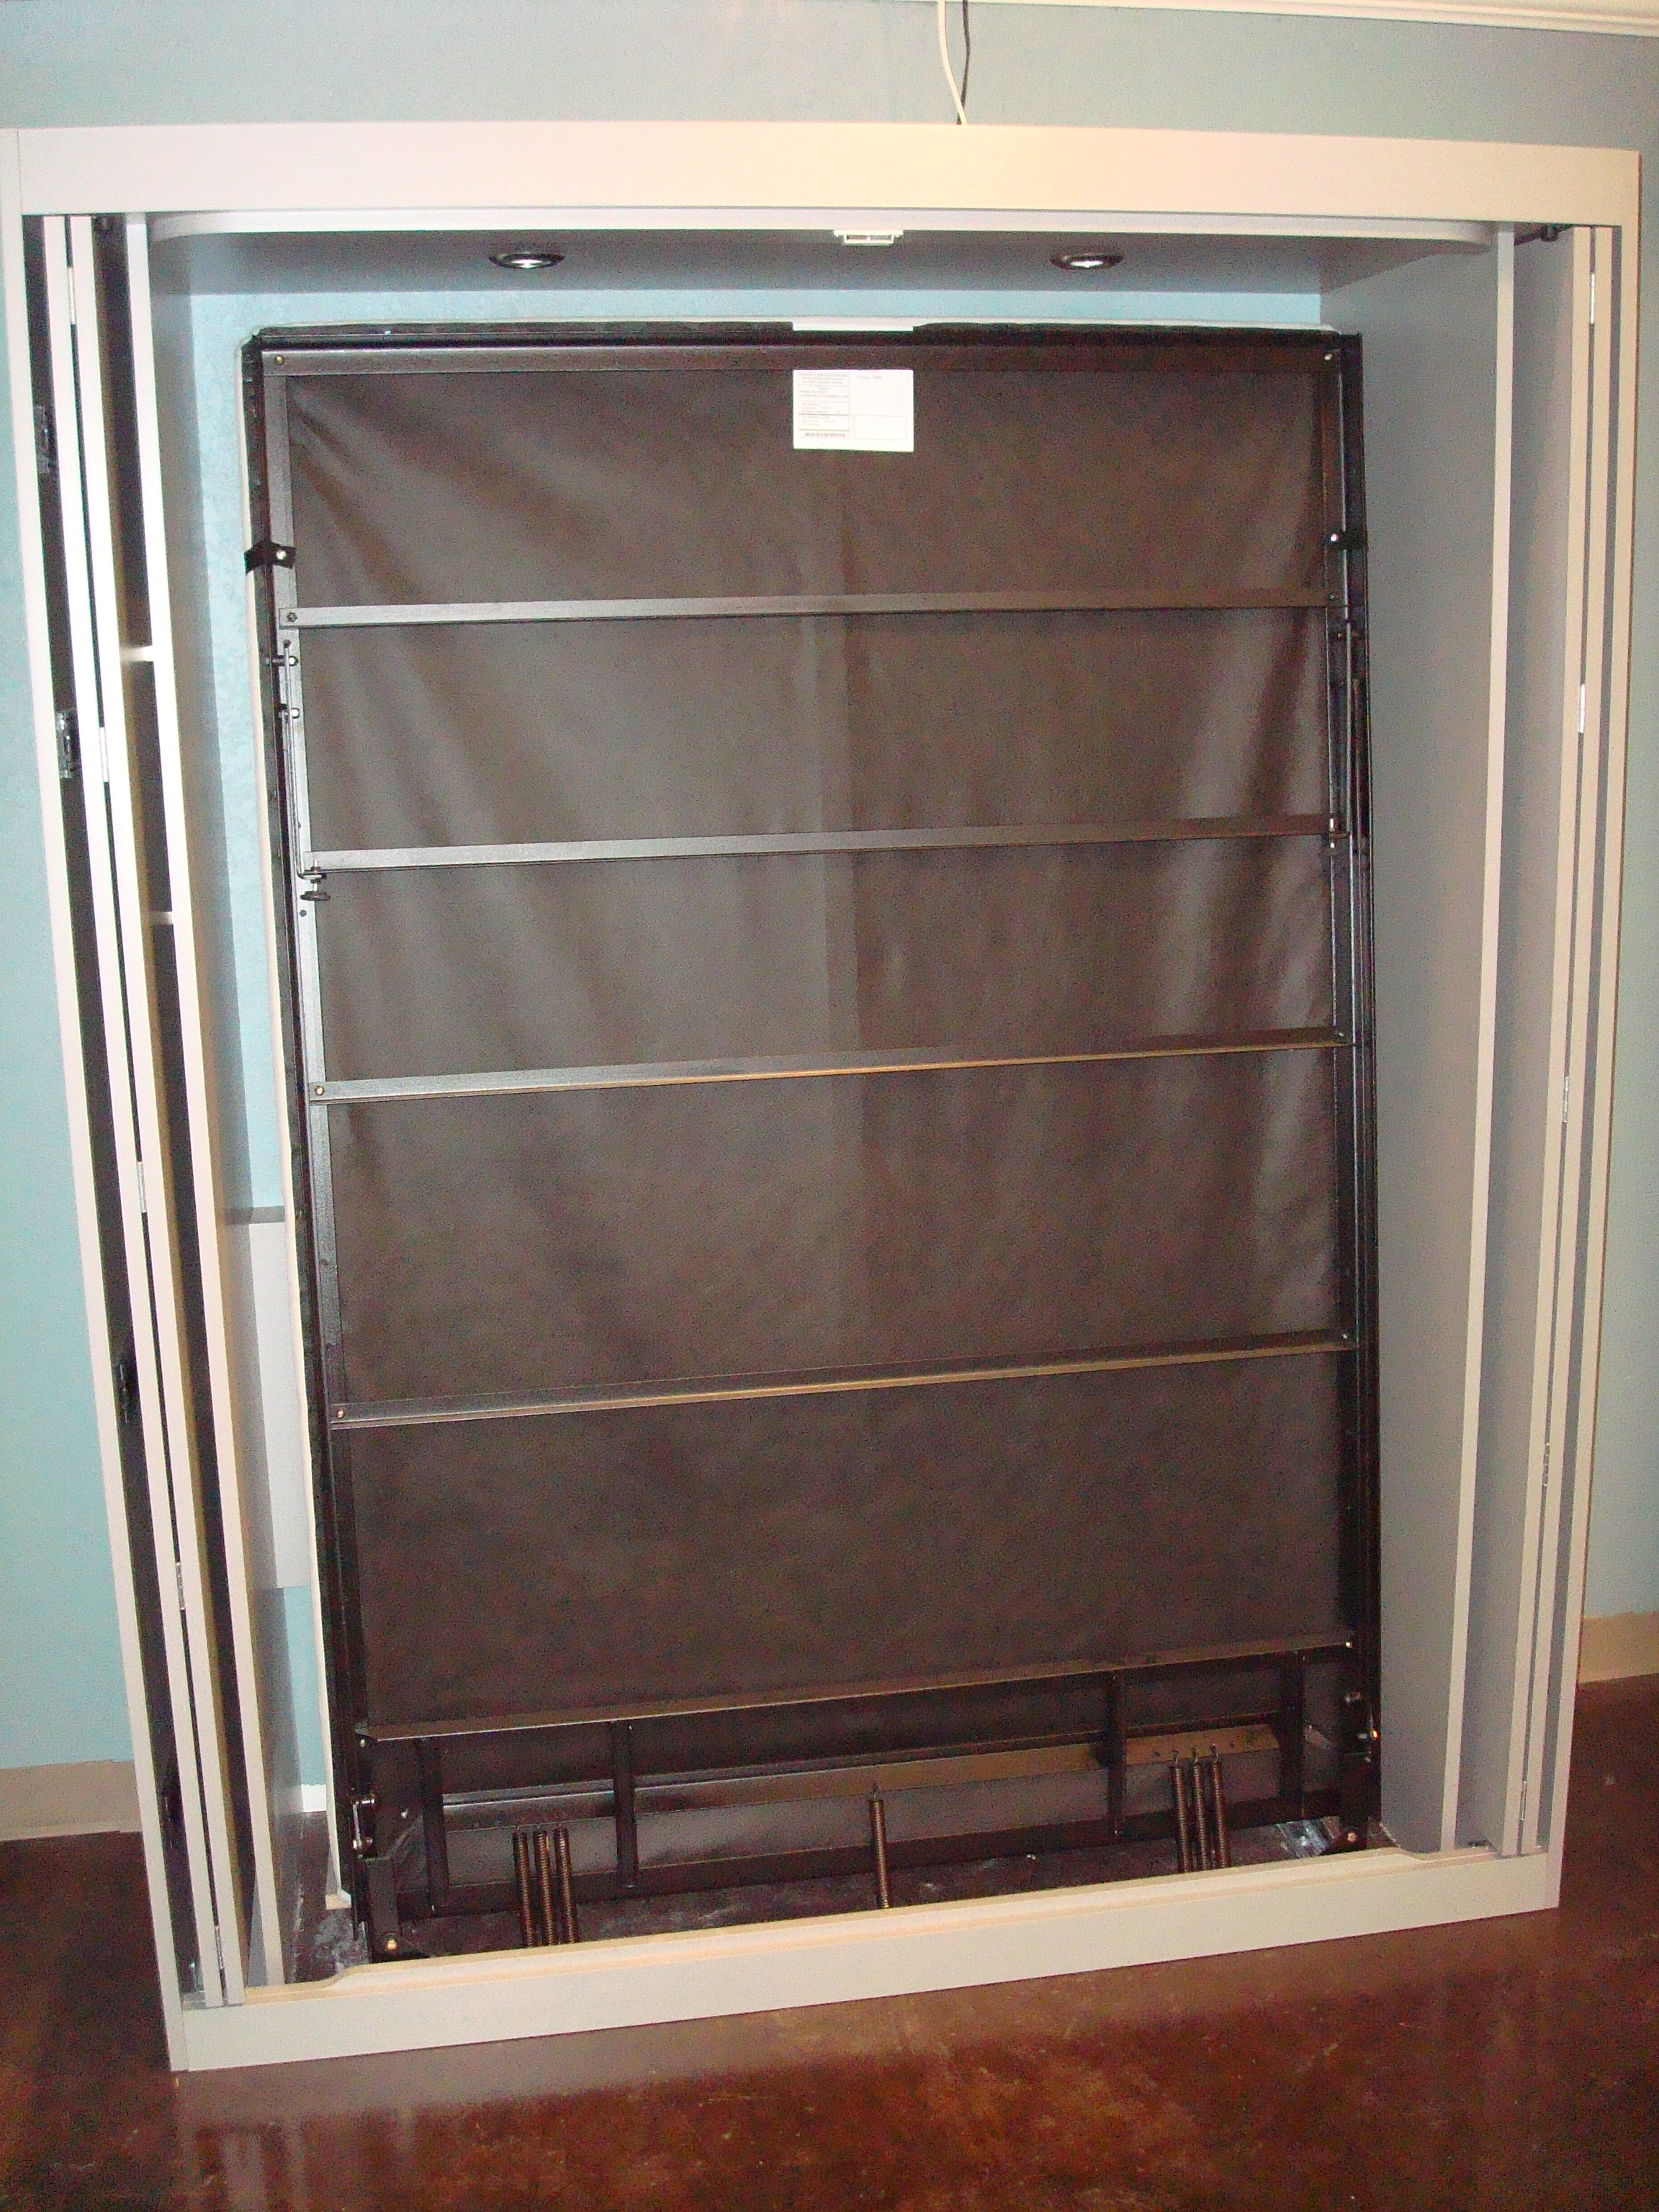 Murphy door diy easy diy wall bed kit boxed go to image for Murphy garage doors